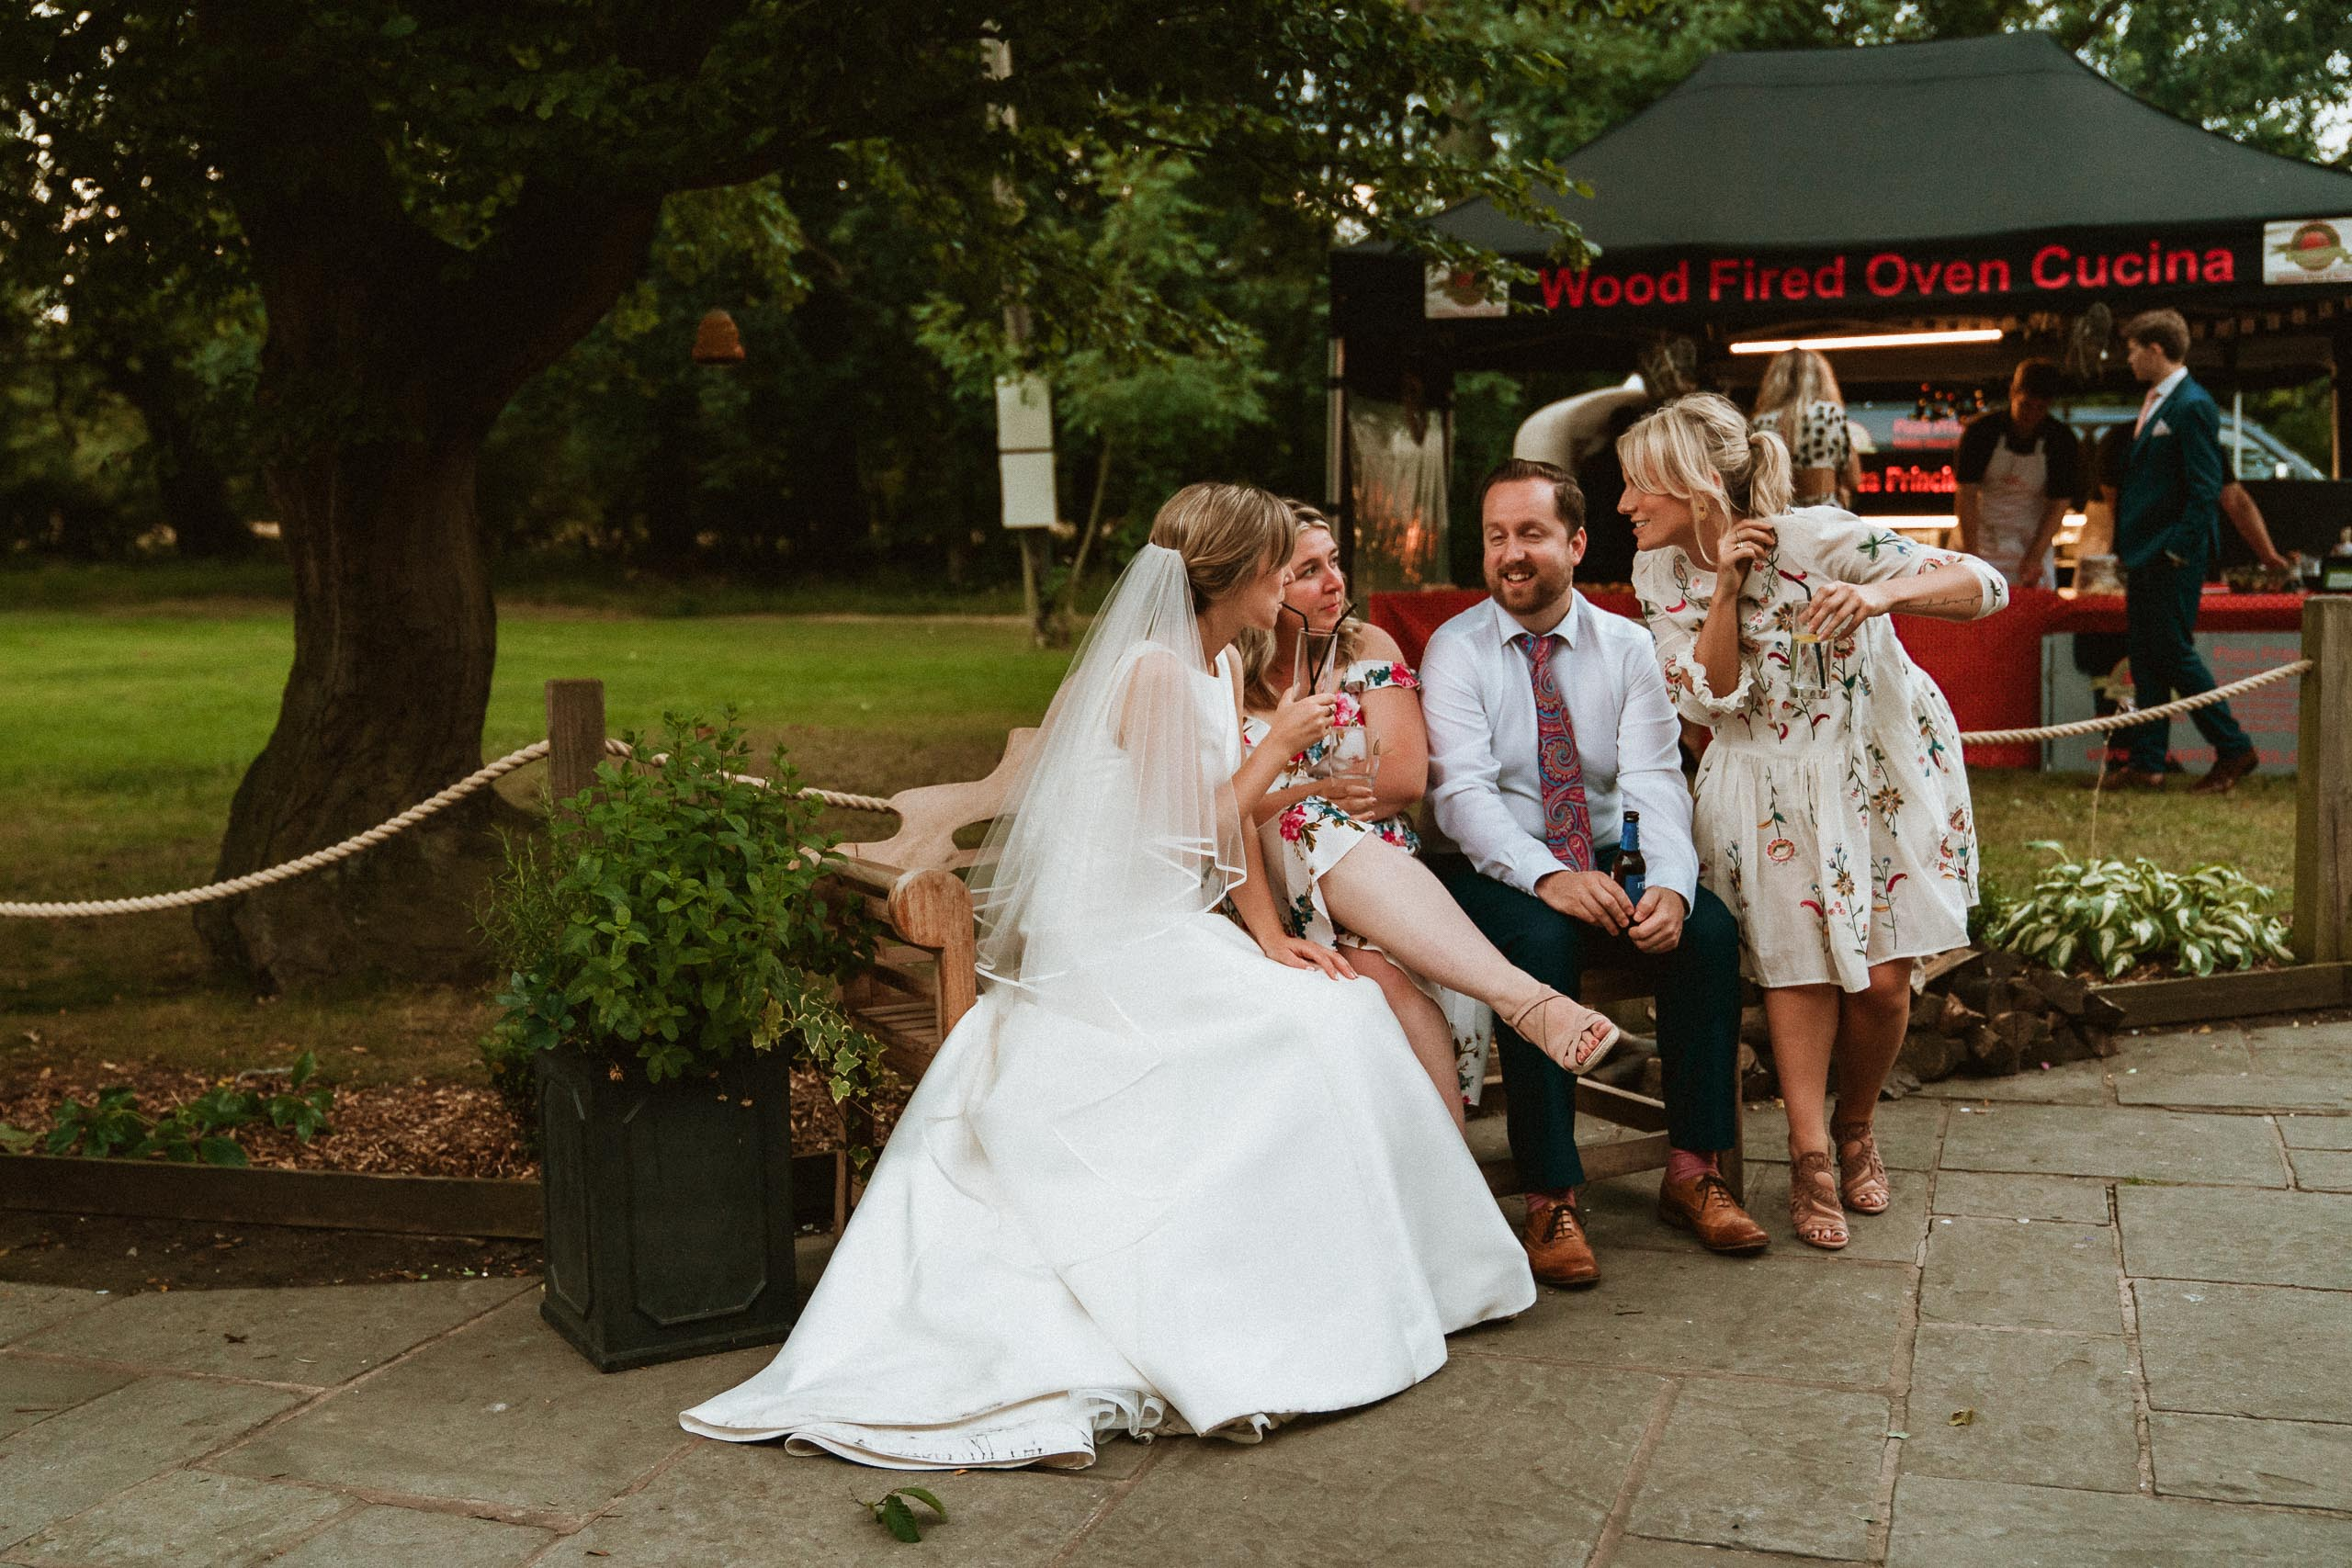 bride sitting on bench with guests near mobile pizza oven